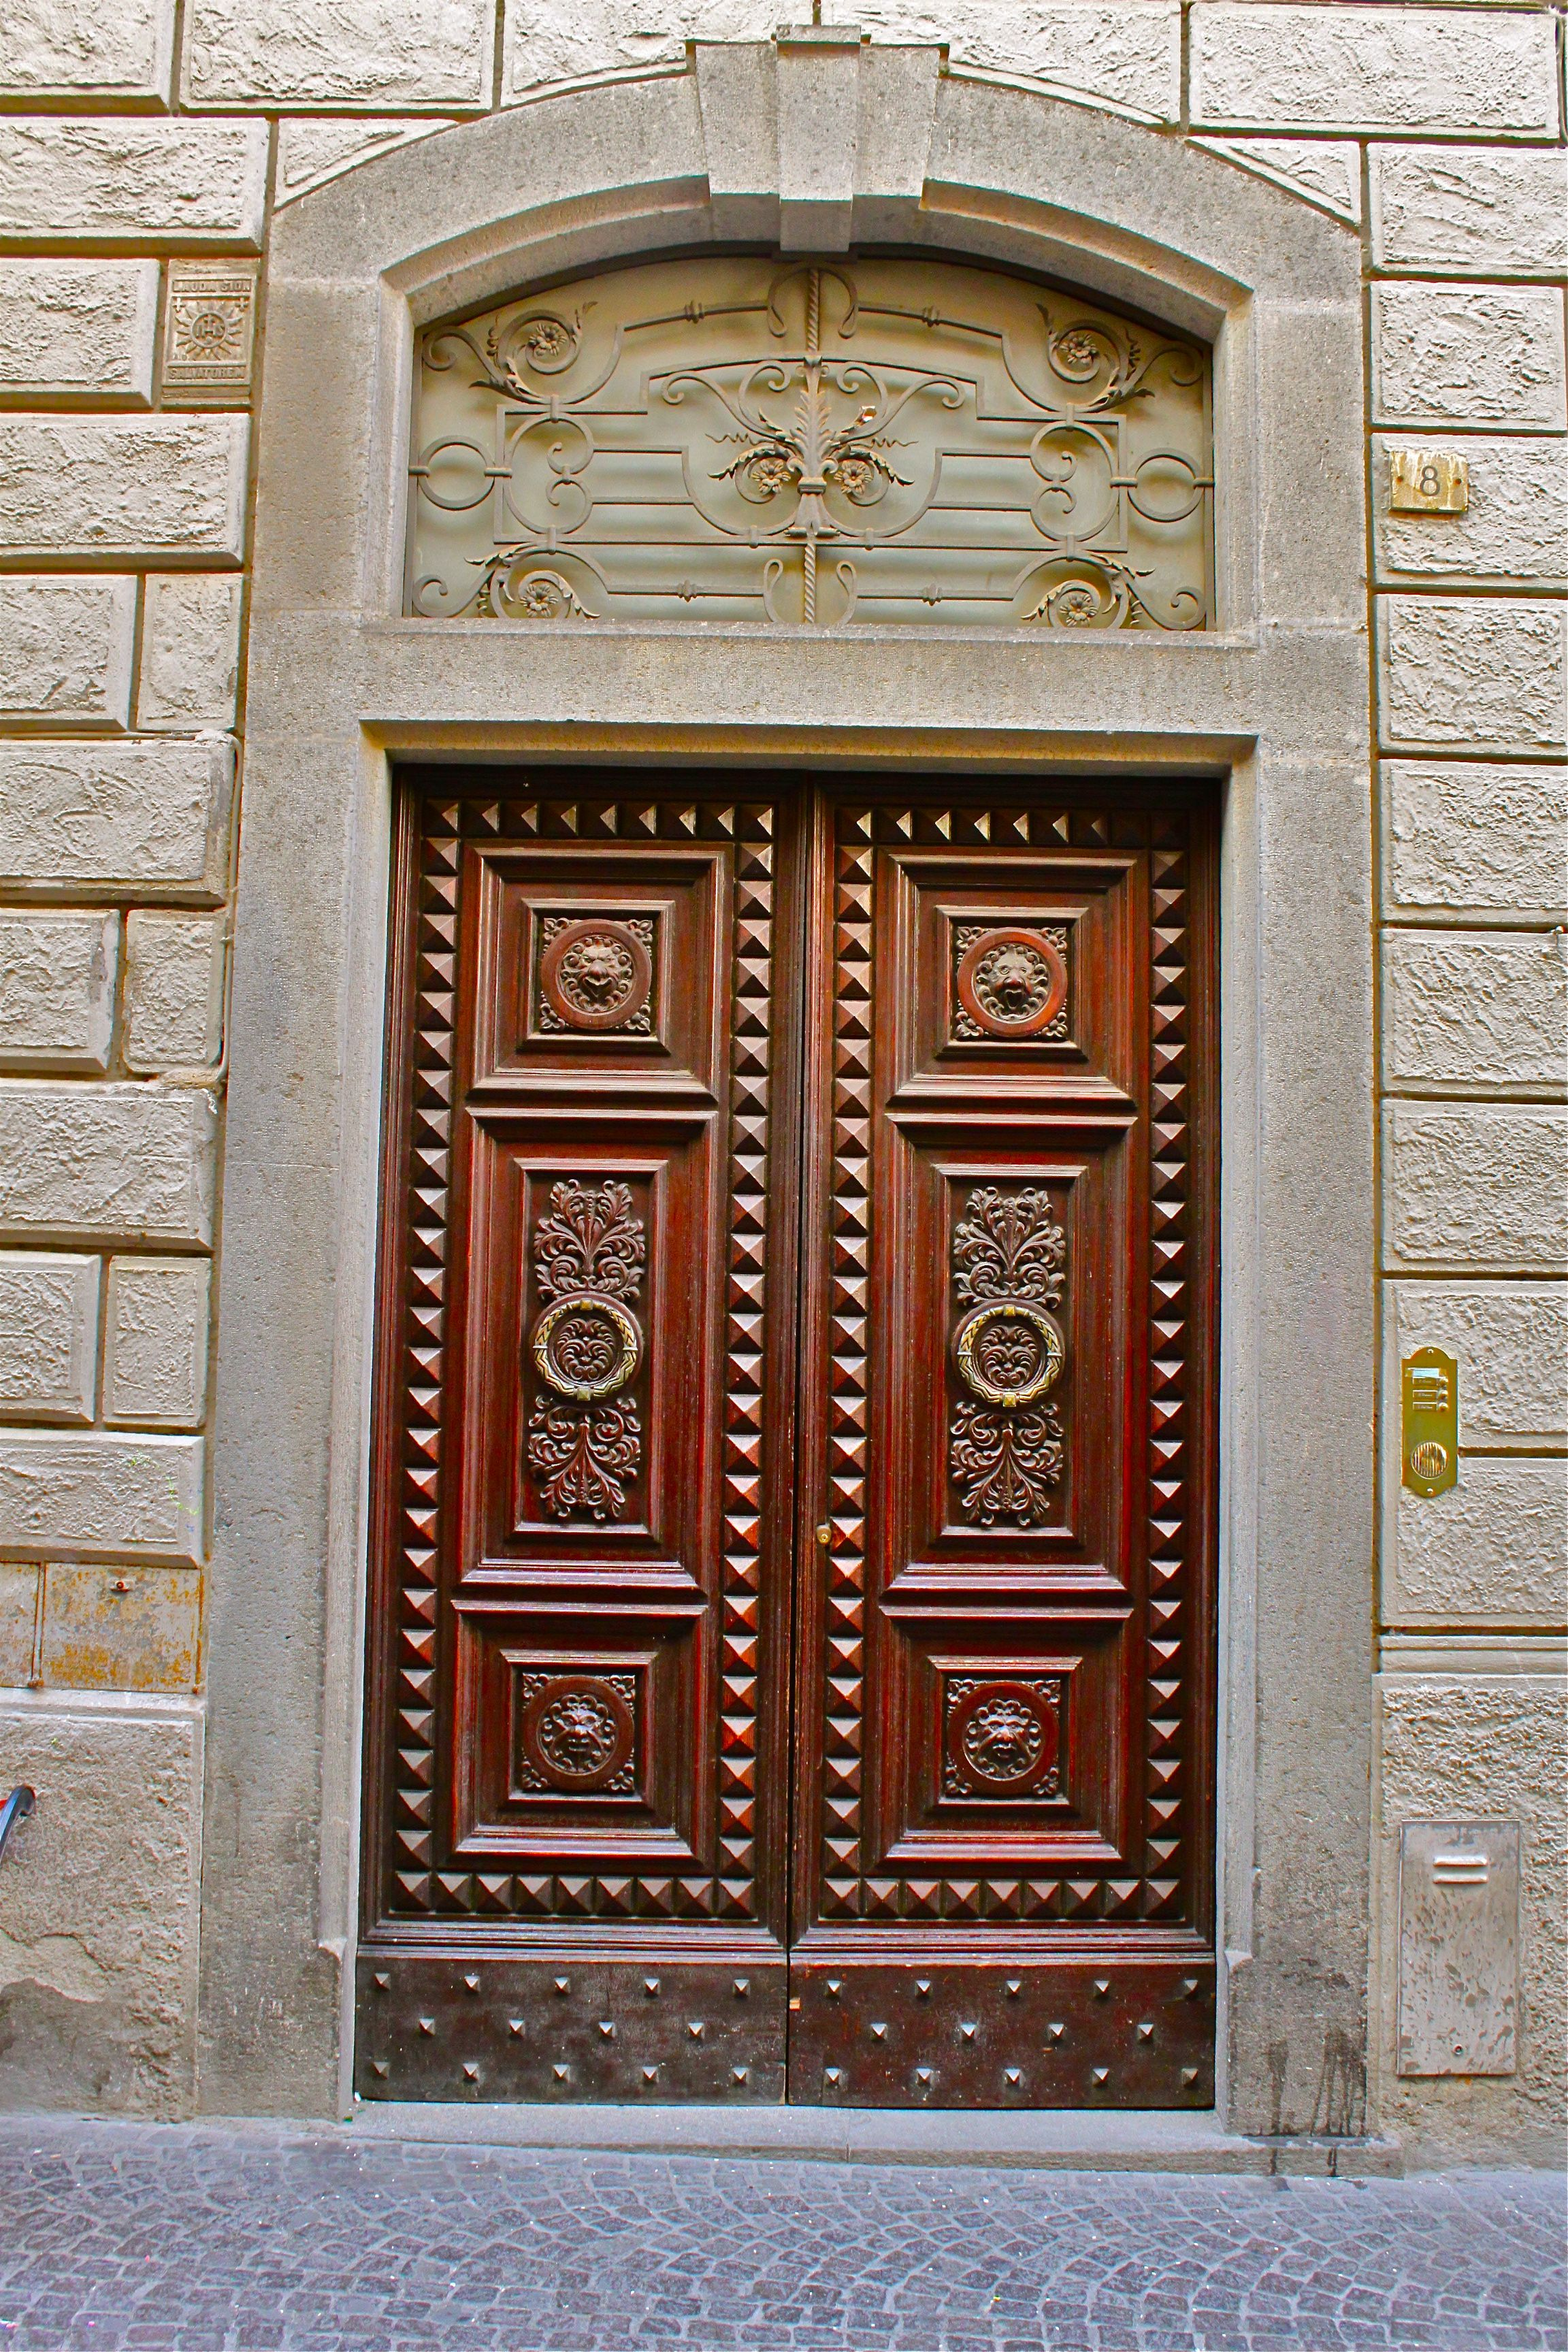 Exquisite Front Entry Doors At Home Depot Fiberglass: Orvieto, Italy... A Showcase Of Exquisite Italian Pottery